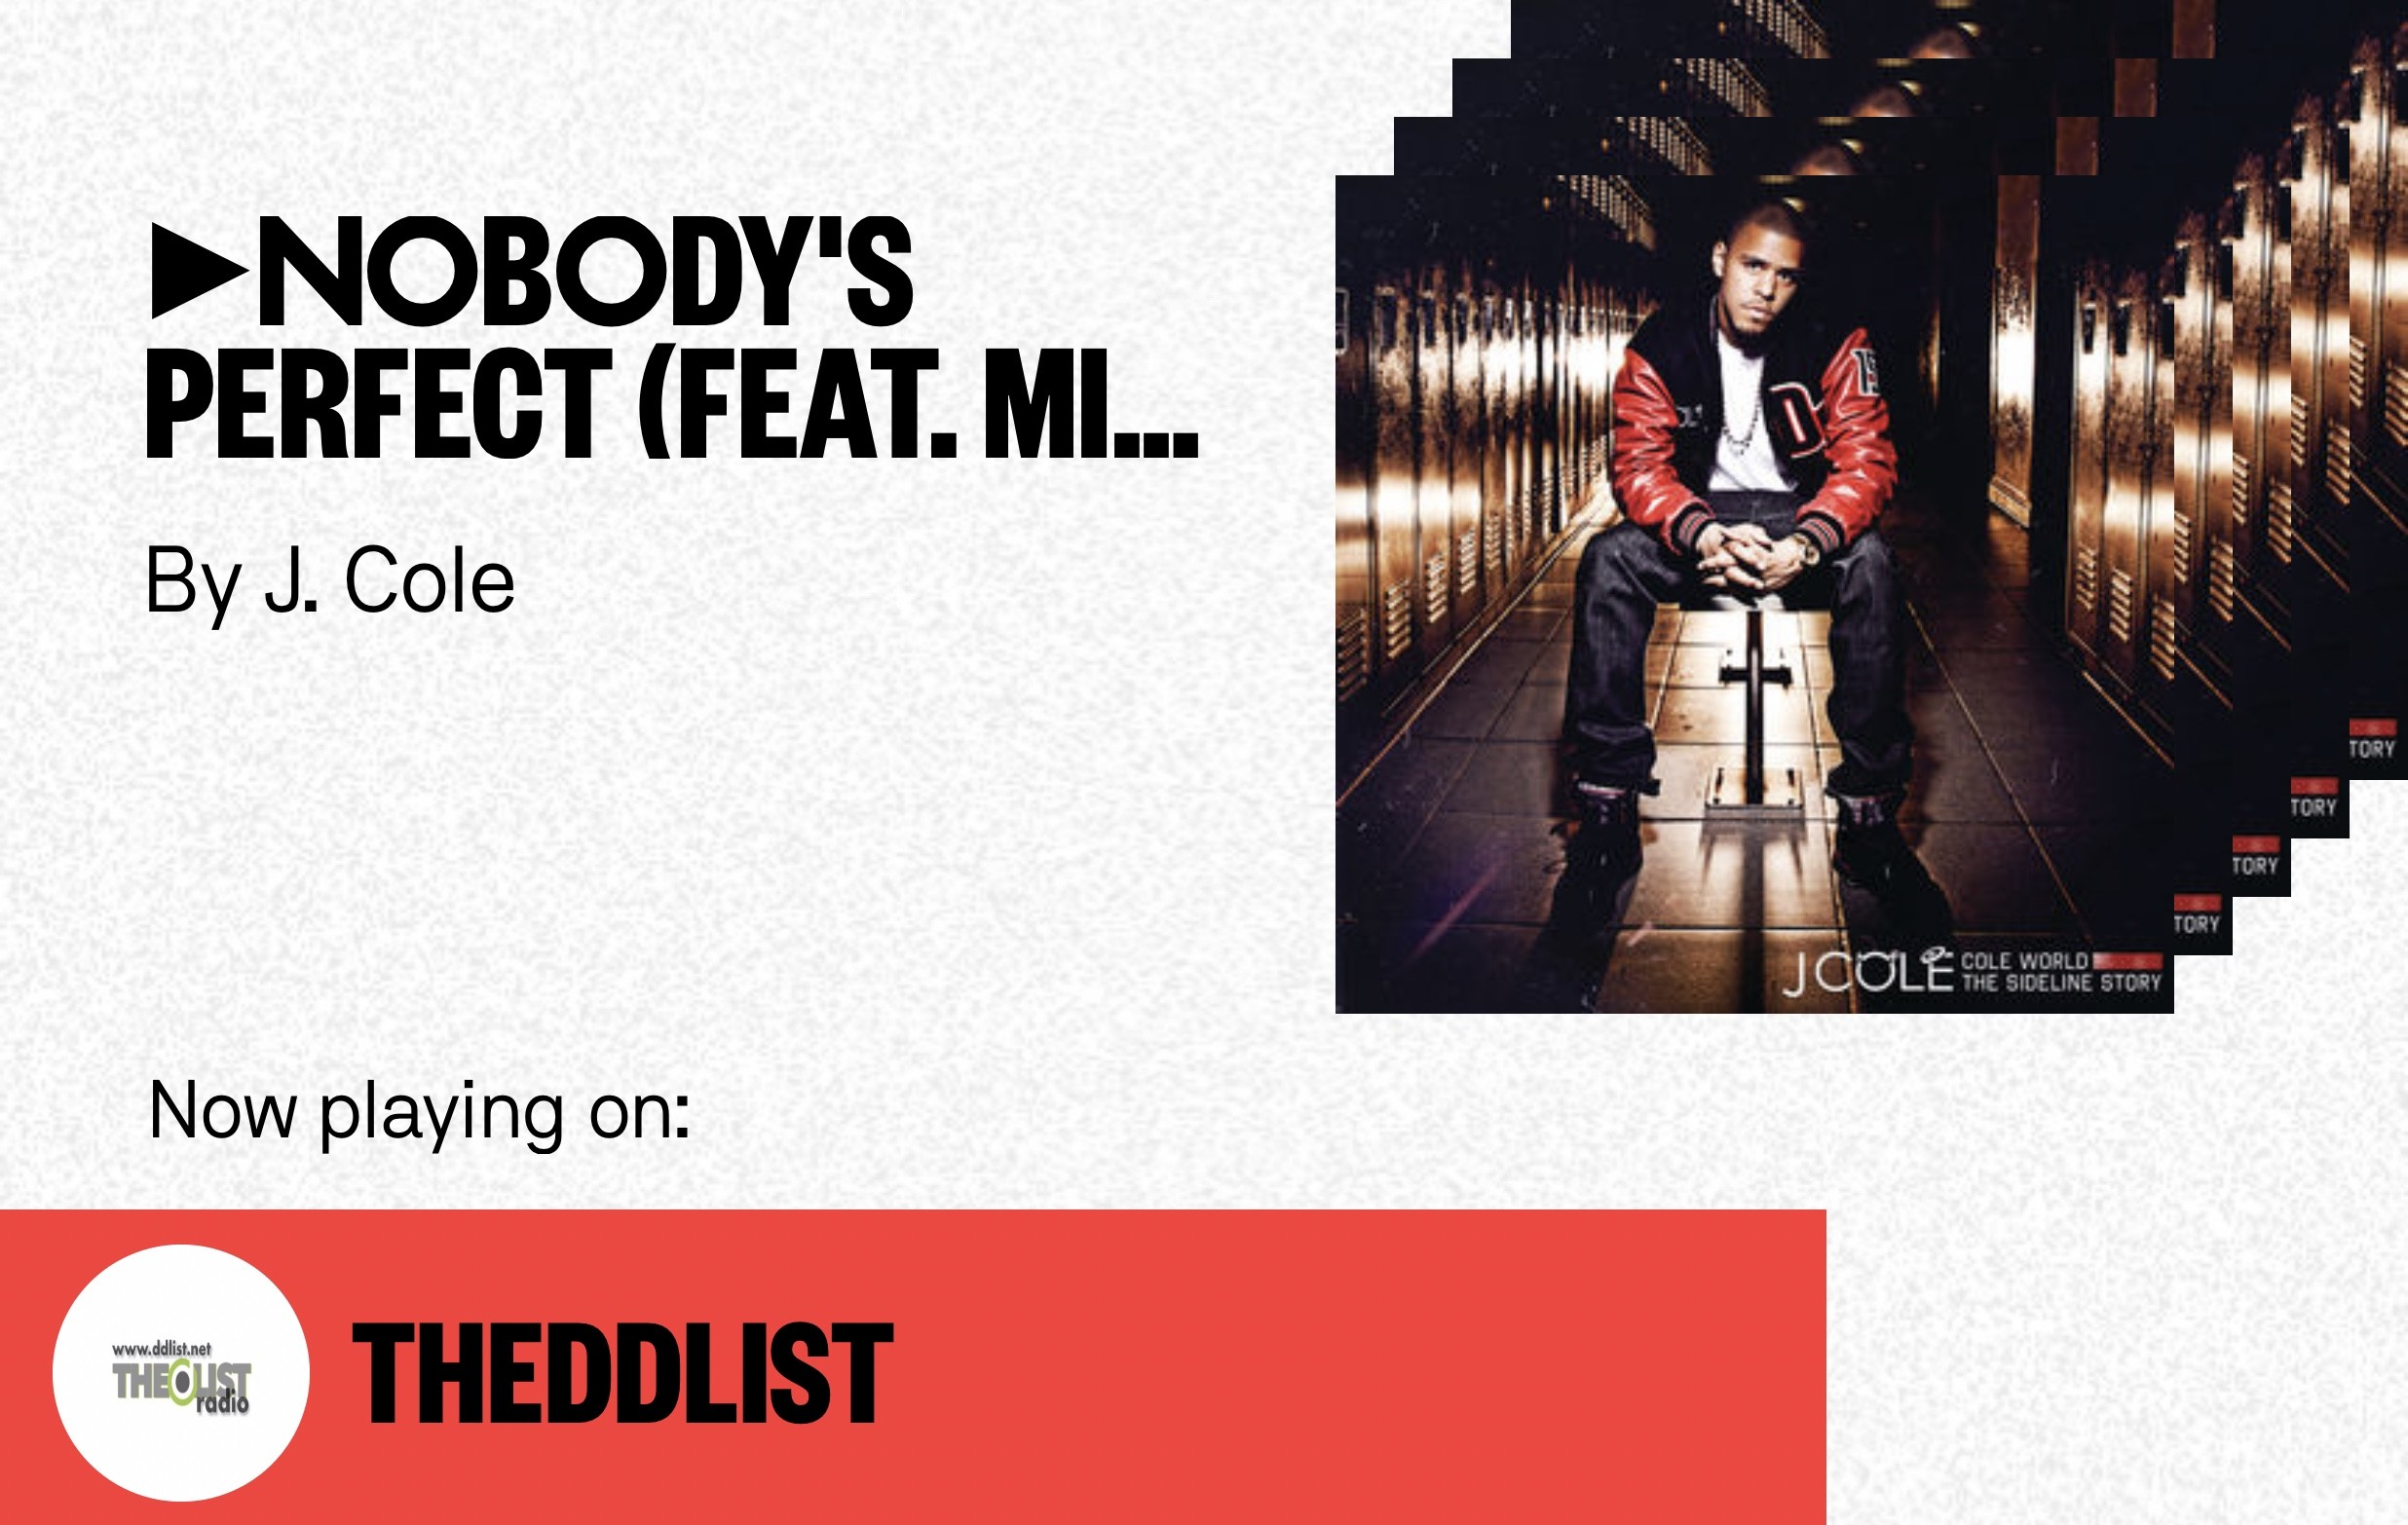 I'm listening to Nobody's Perfect (feat. Missy Elliott) by J. Cole on THEDDLIST. Join me on Stationhead.